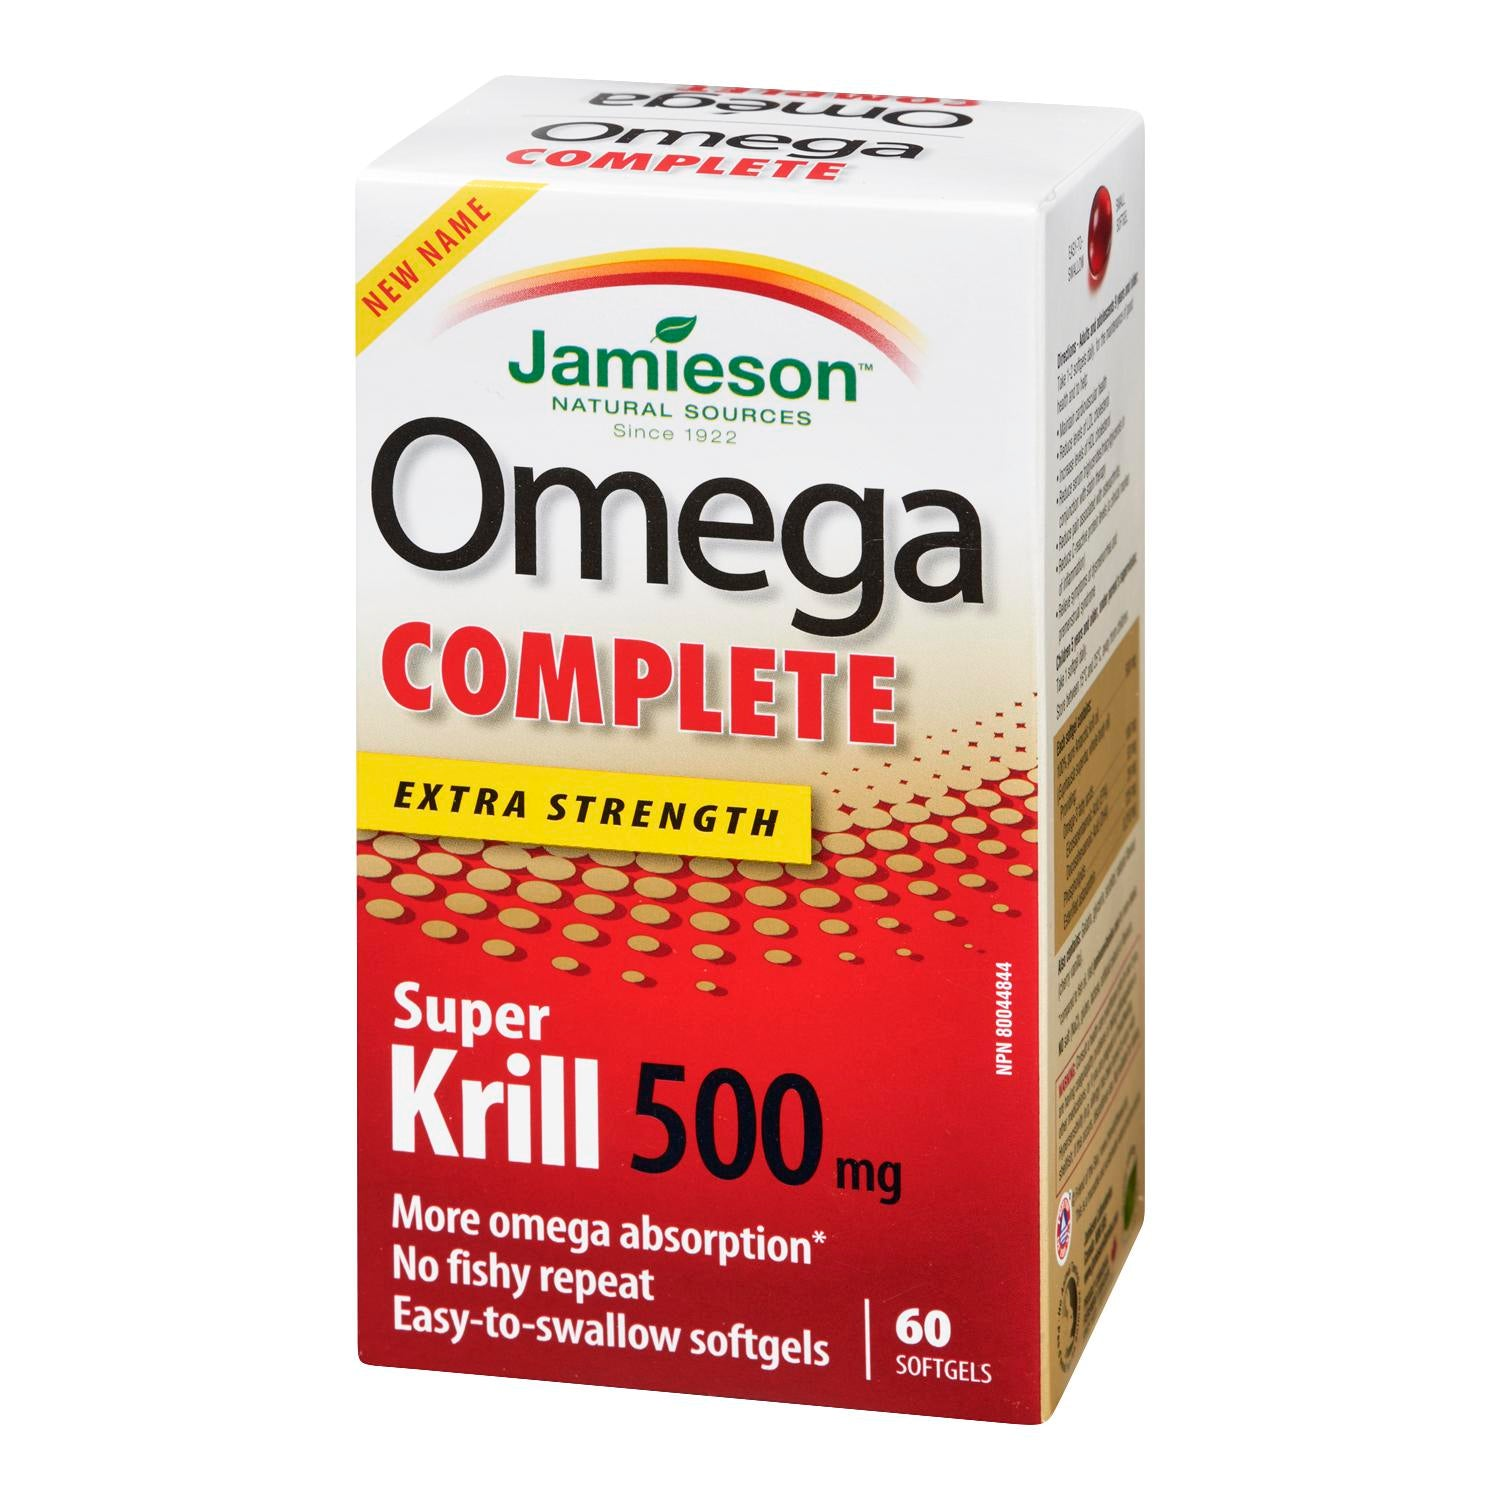 Jamieson Omega Complete Super Krill 500mg 60 Softgels